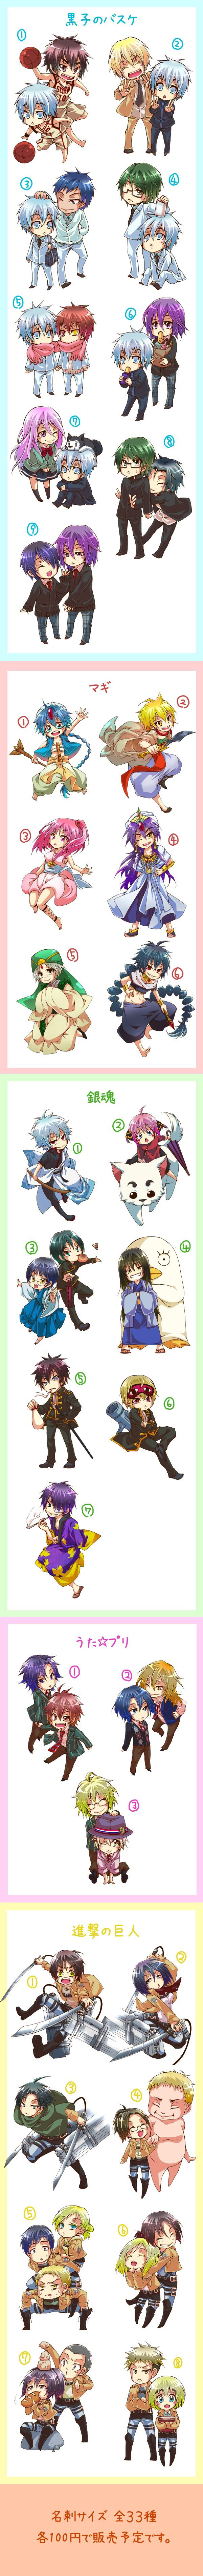 Anime 1) Kuroko no Basket, 2) Magi, 3) Gintama 4) Uta No Prince Sama, 5) Attack On Titan